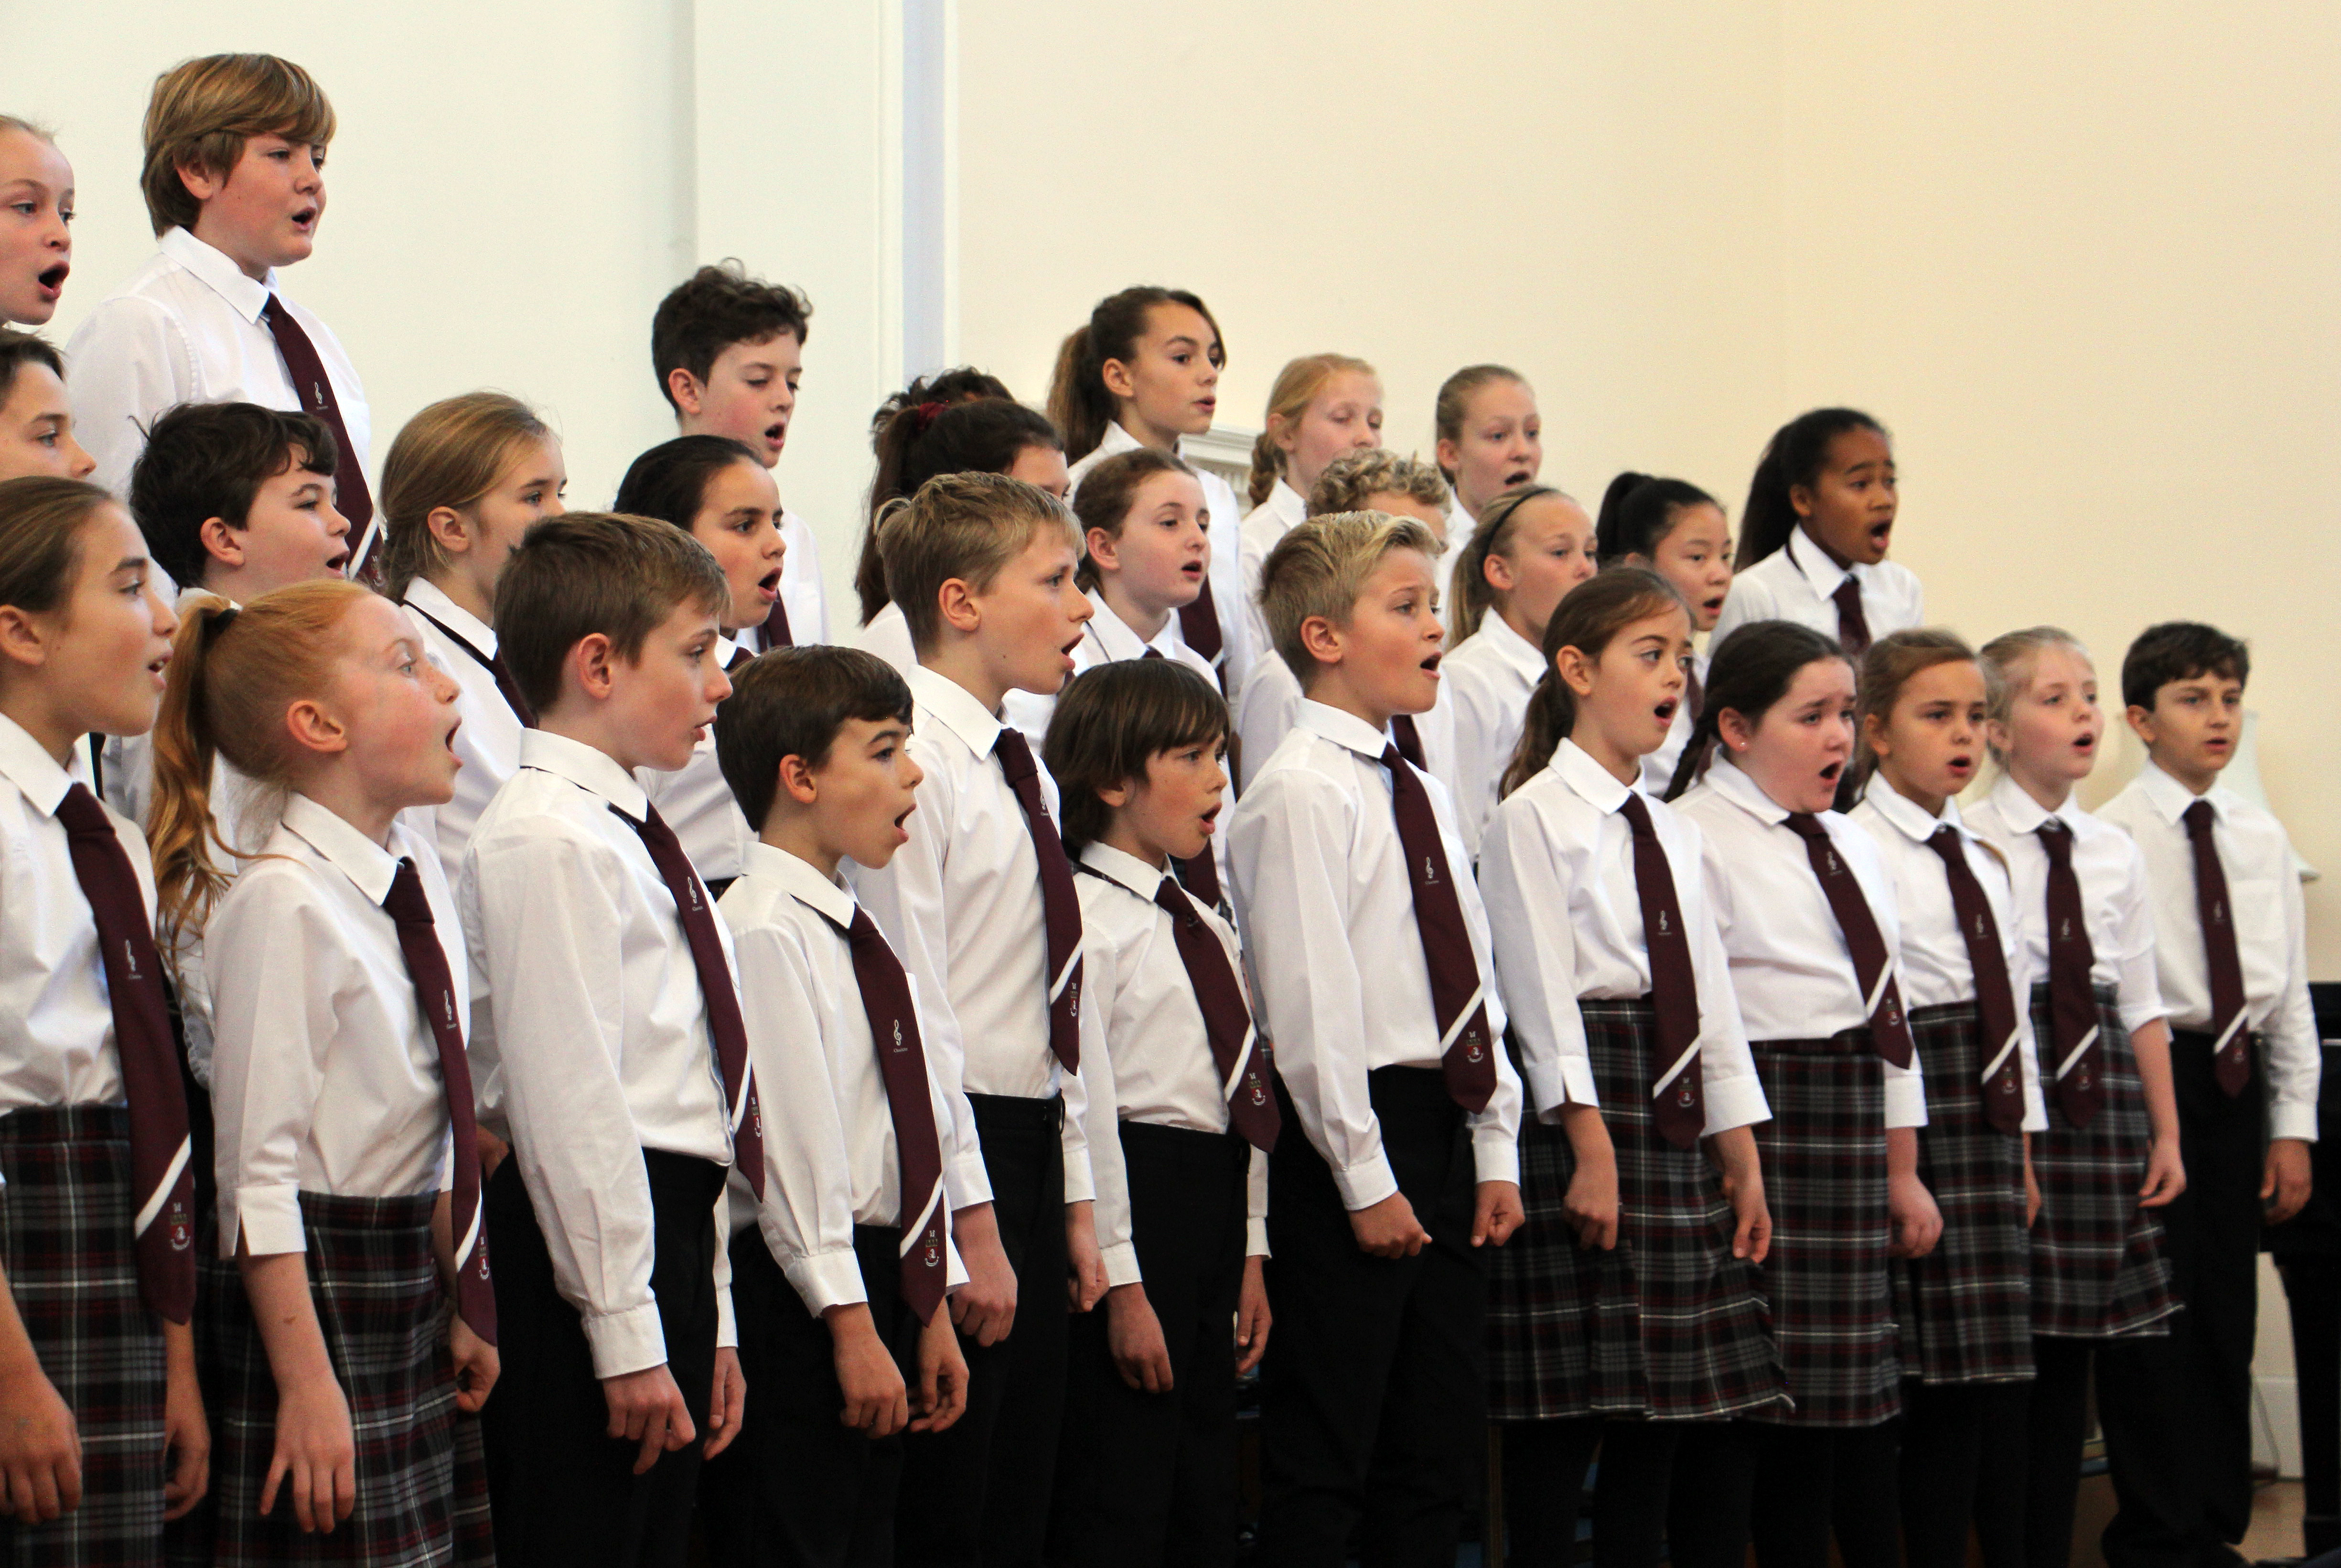 Choristers' Lunchtime Concert